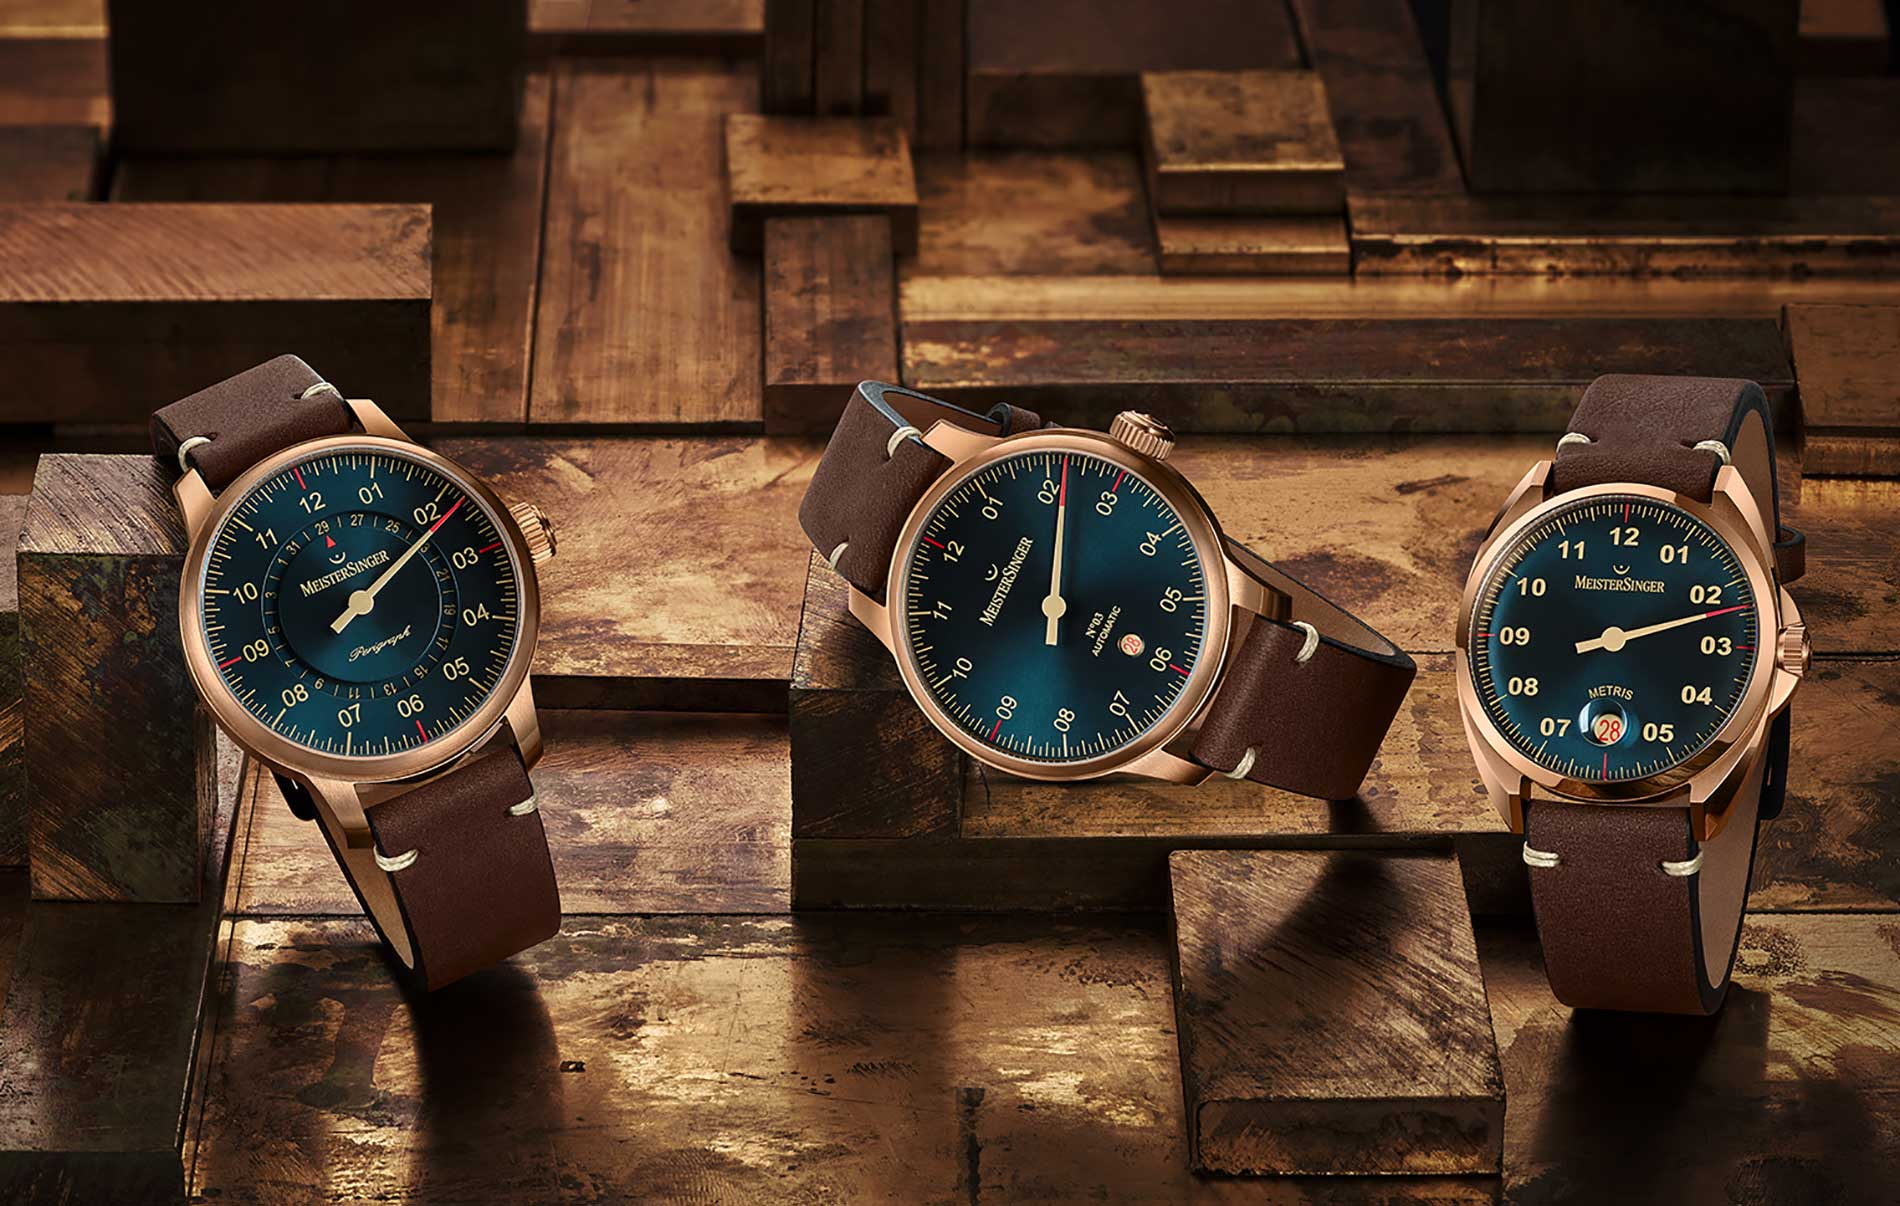 MeisterSinger presents the first three watches in its new Bronze Line